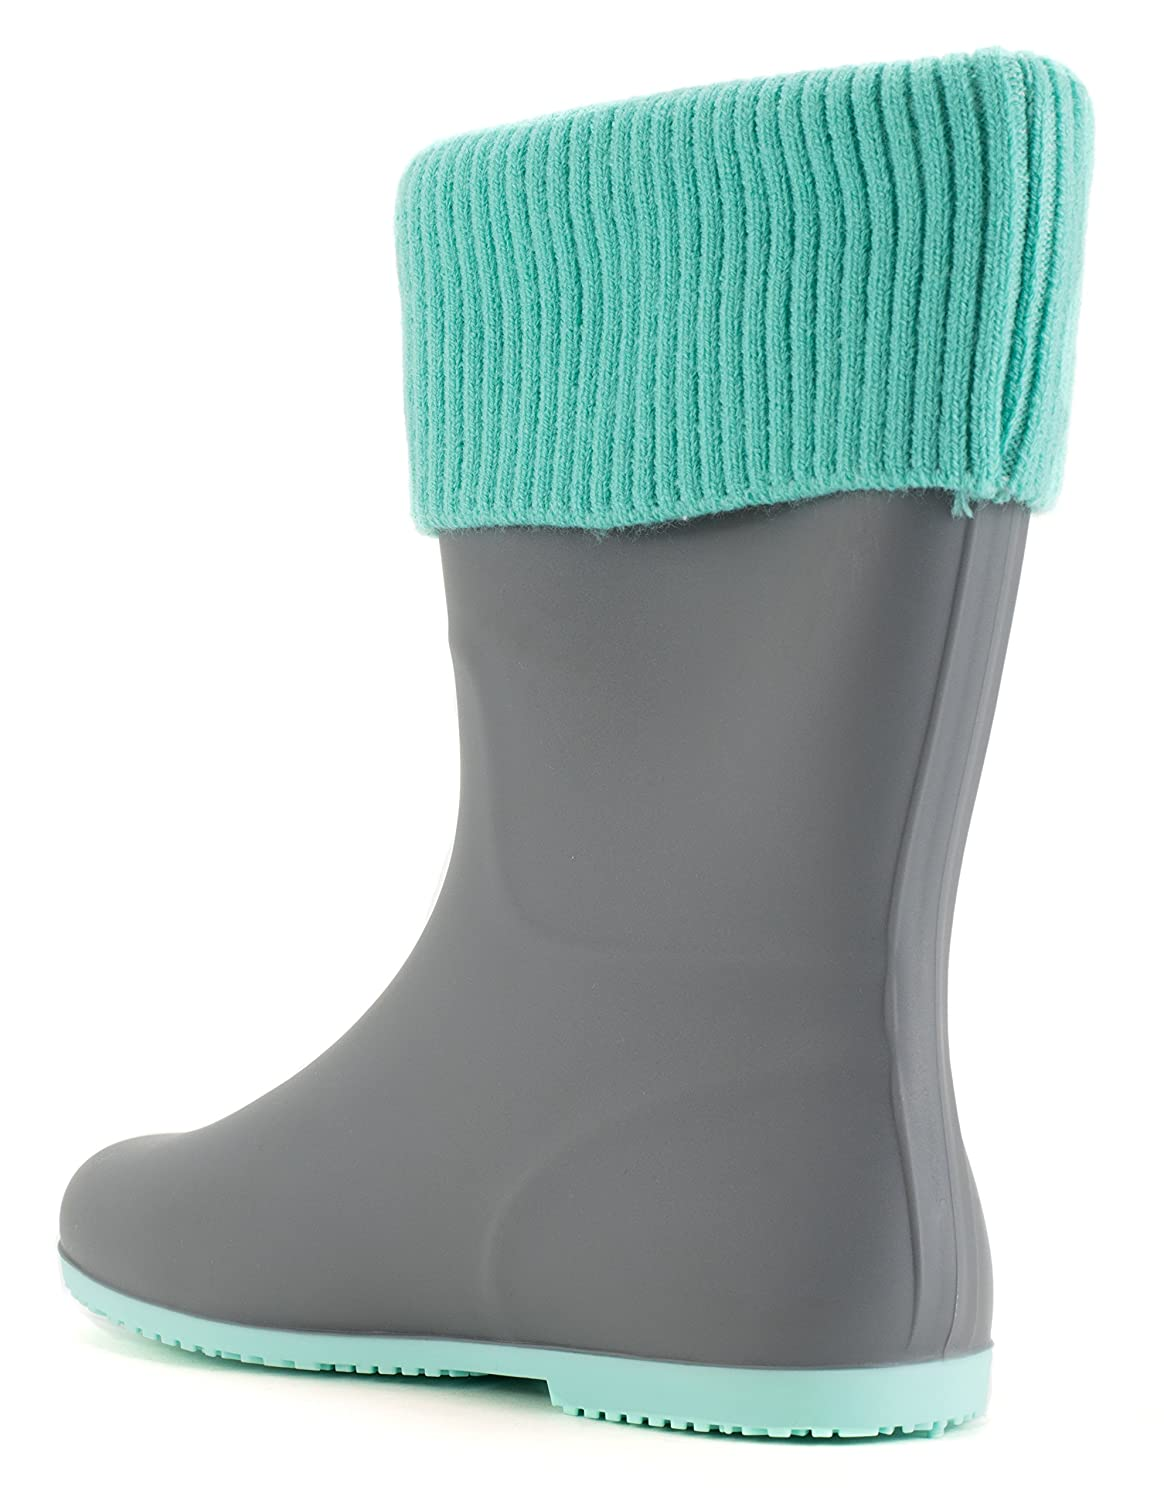 Avanti Storm Rain Boot Waterproof With Removable Knitted Cuff Monogram-Able Foldable B078SY9X73 11 B(M) US|Grey and Teal